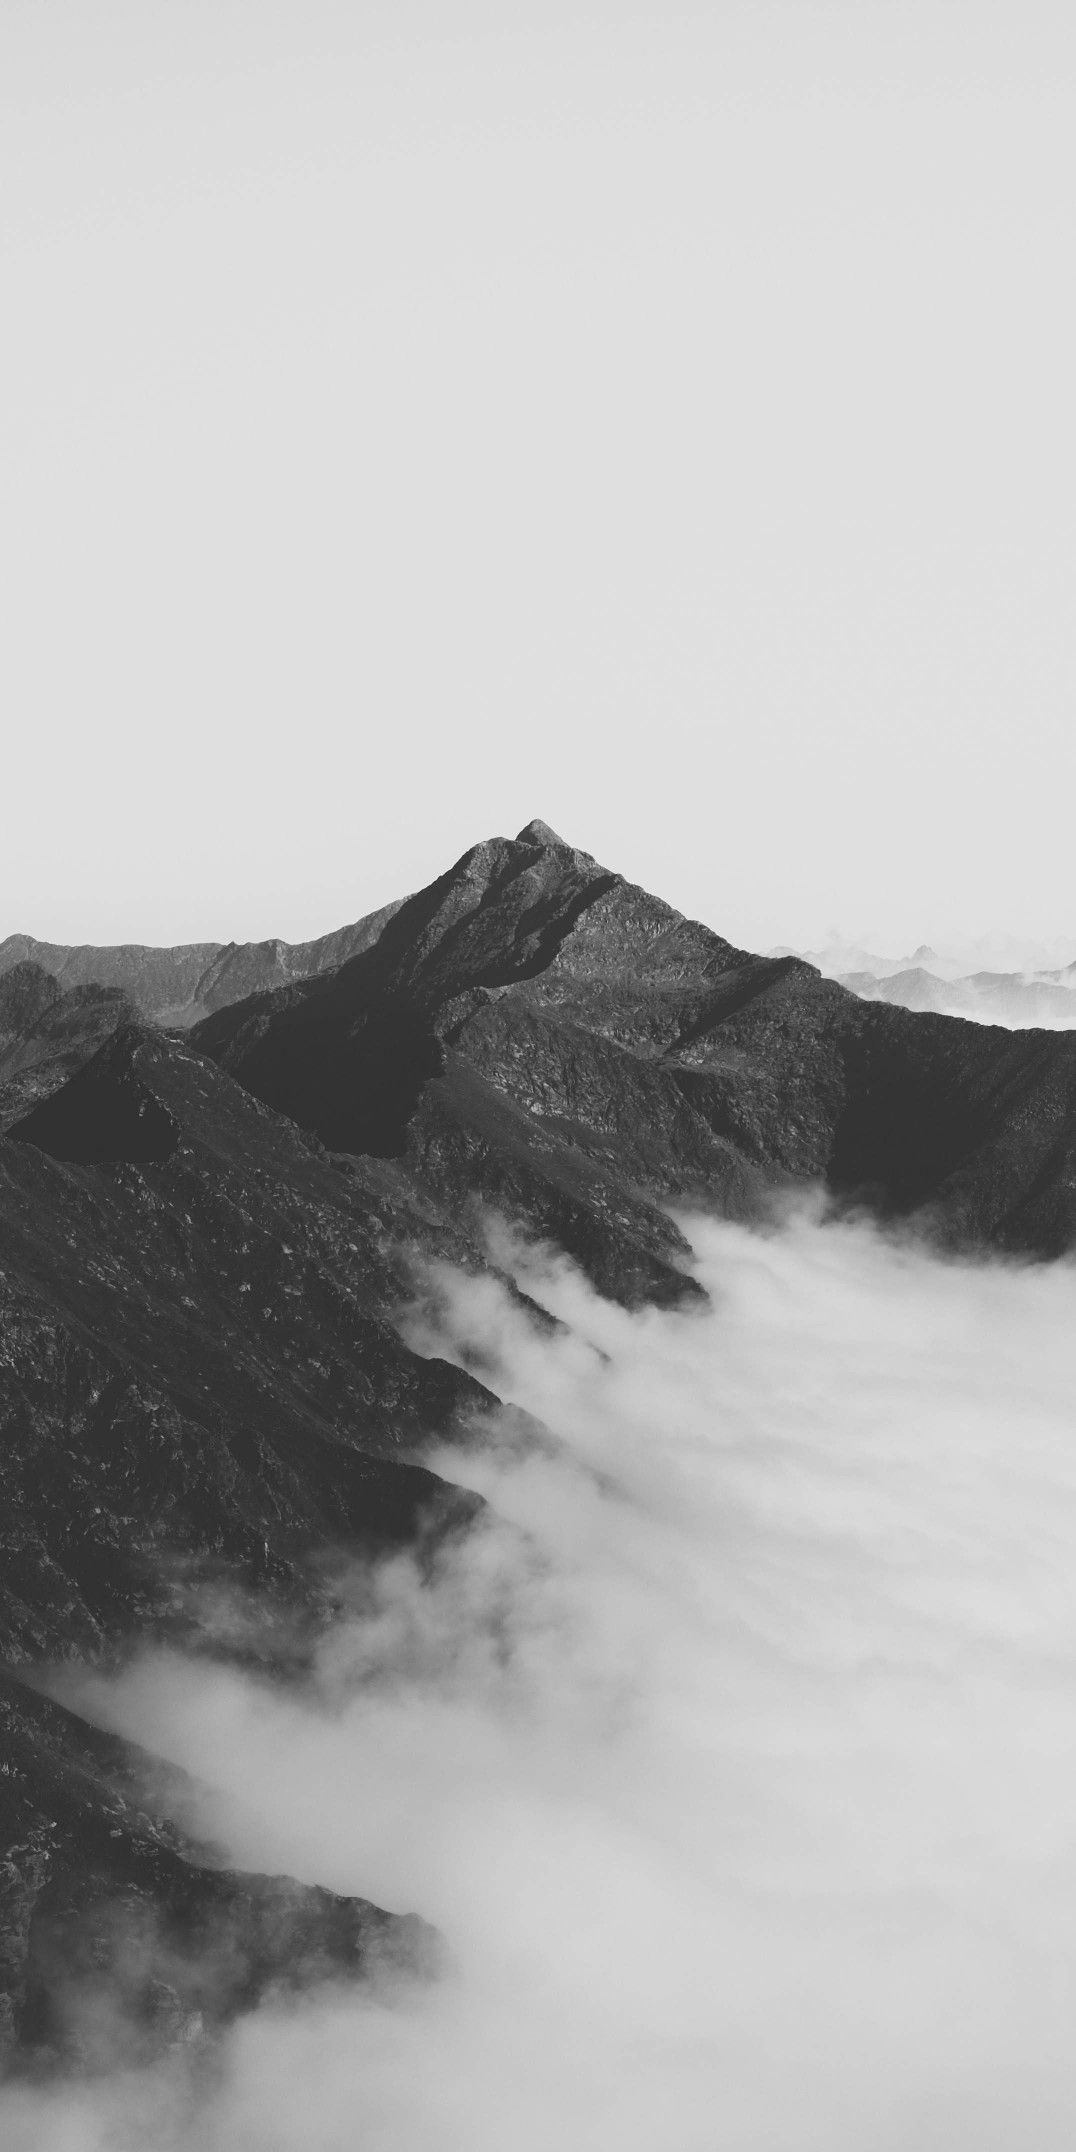 Wallpaper Mountain Black White Clouds Black And White Landscape Cloud Wallpaper Black And White Wallpaper